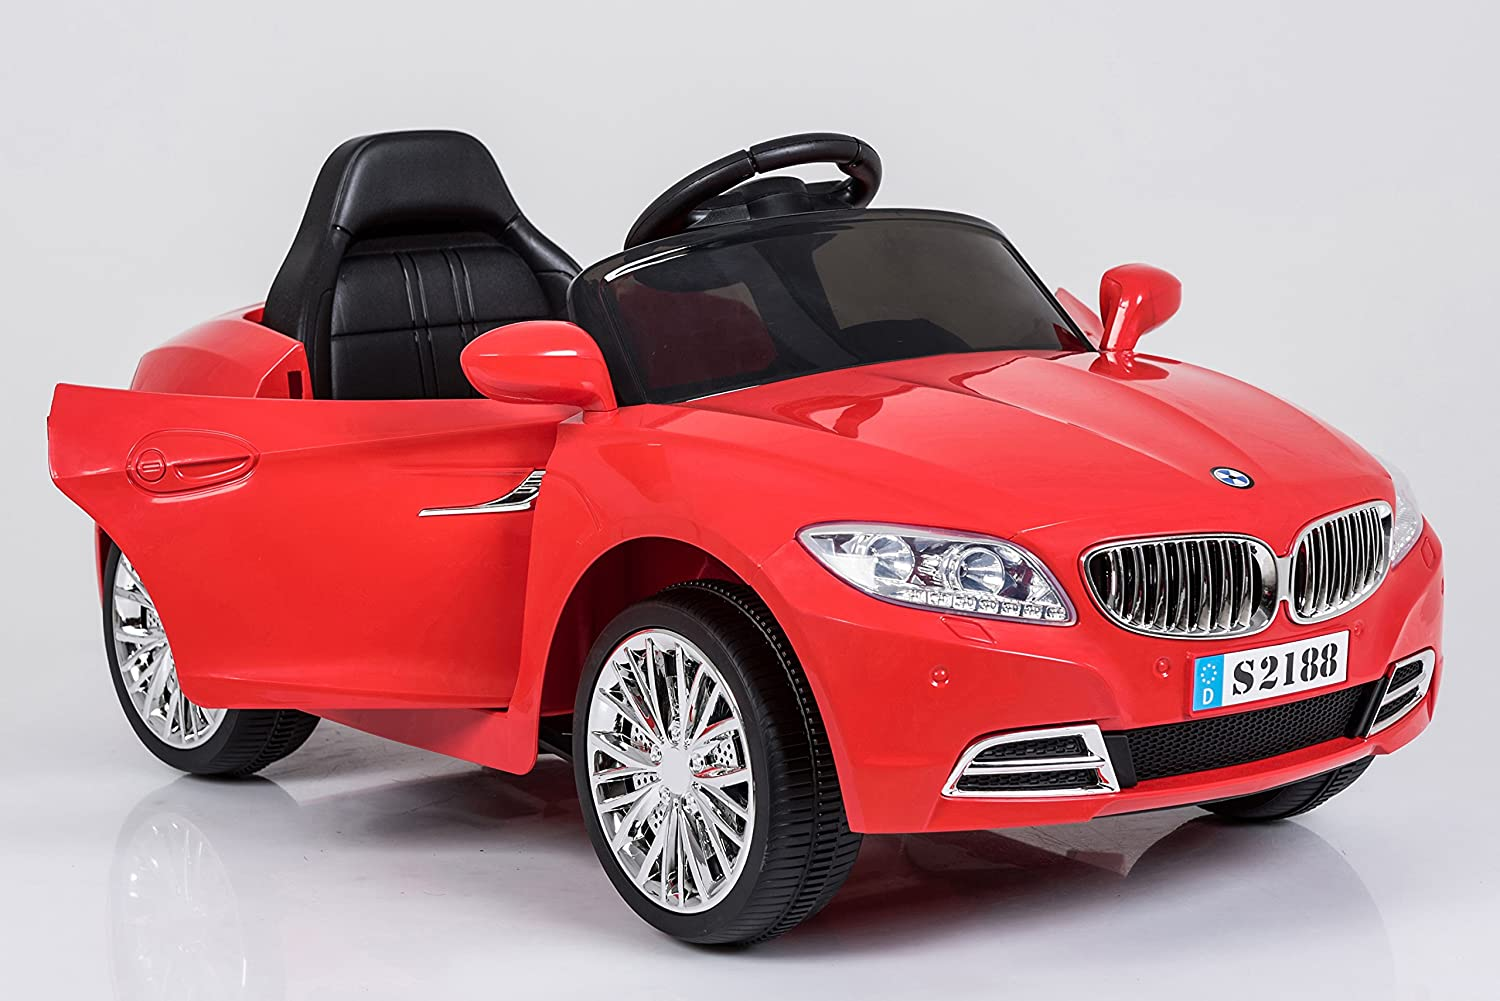 Ricco Lights And Music Red Bmw Style Kids Ride On Remote